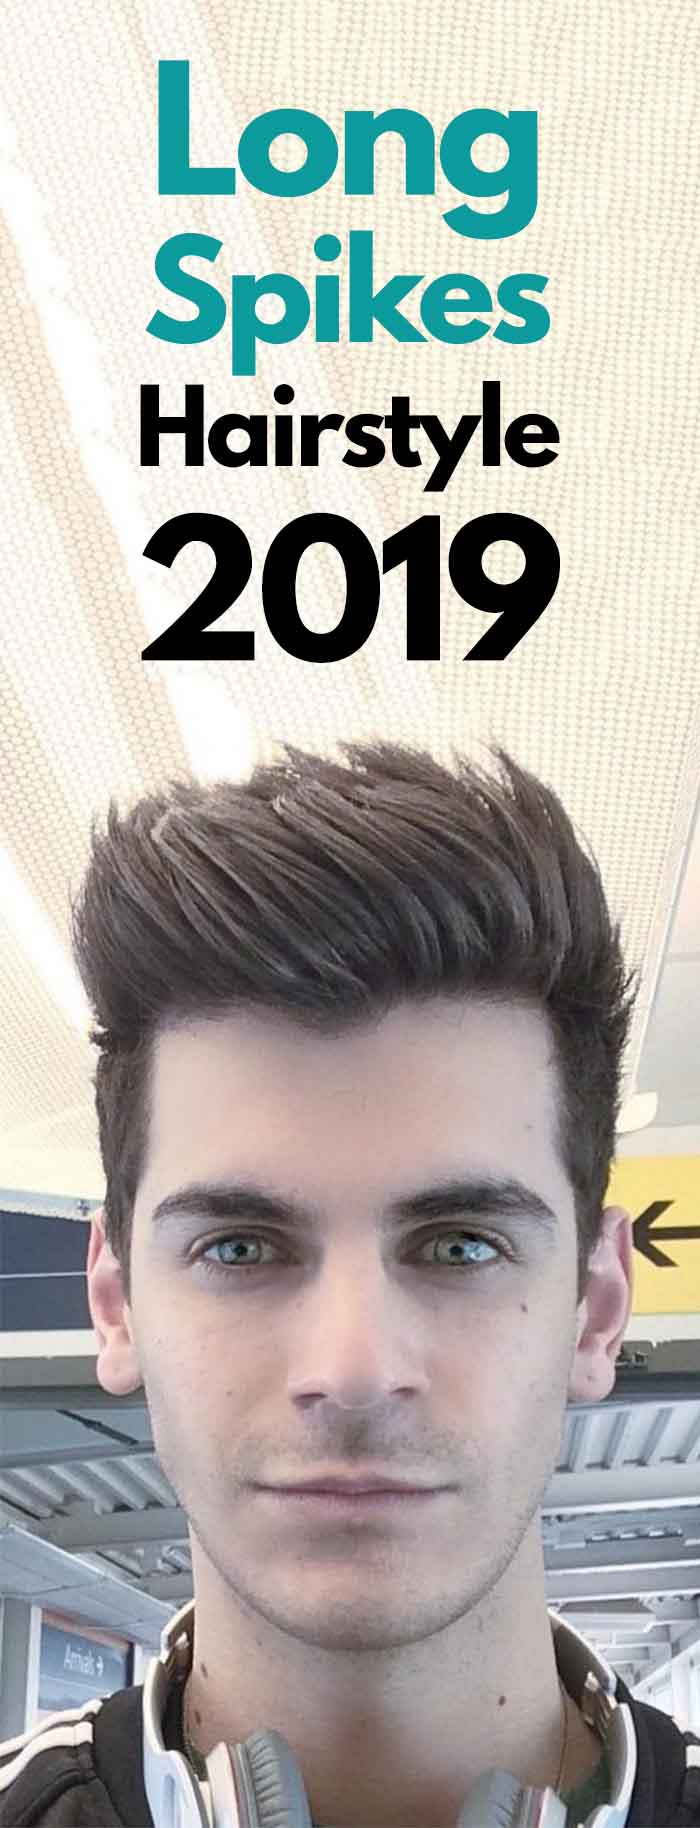 Long Spikes Hairstyle 2019!